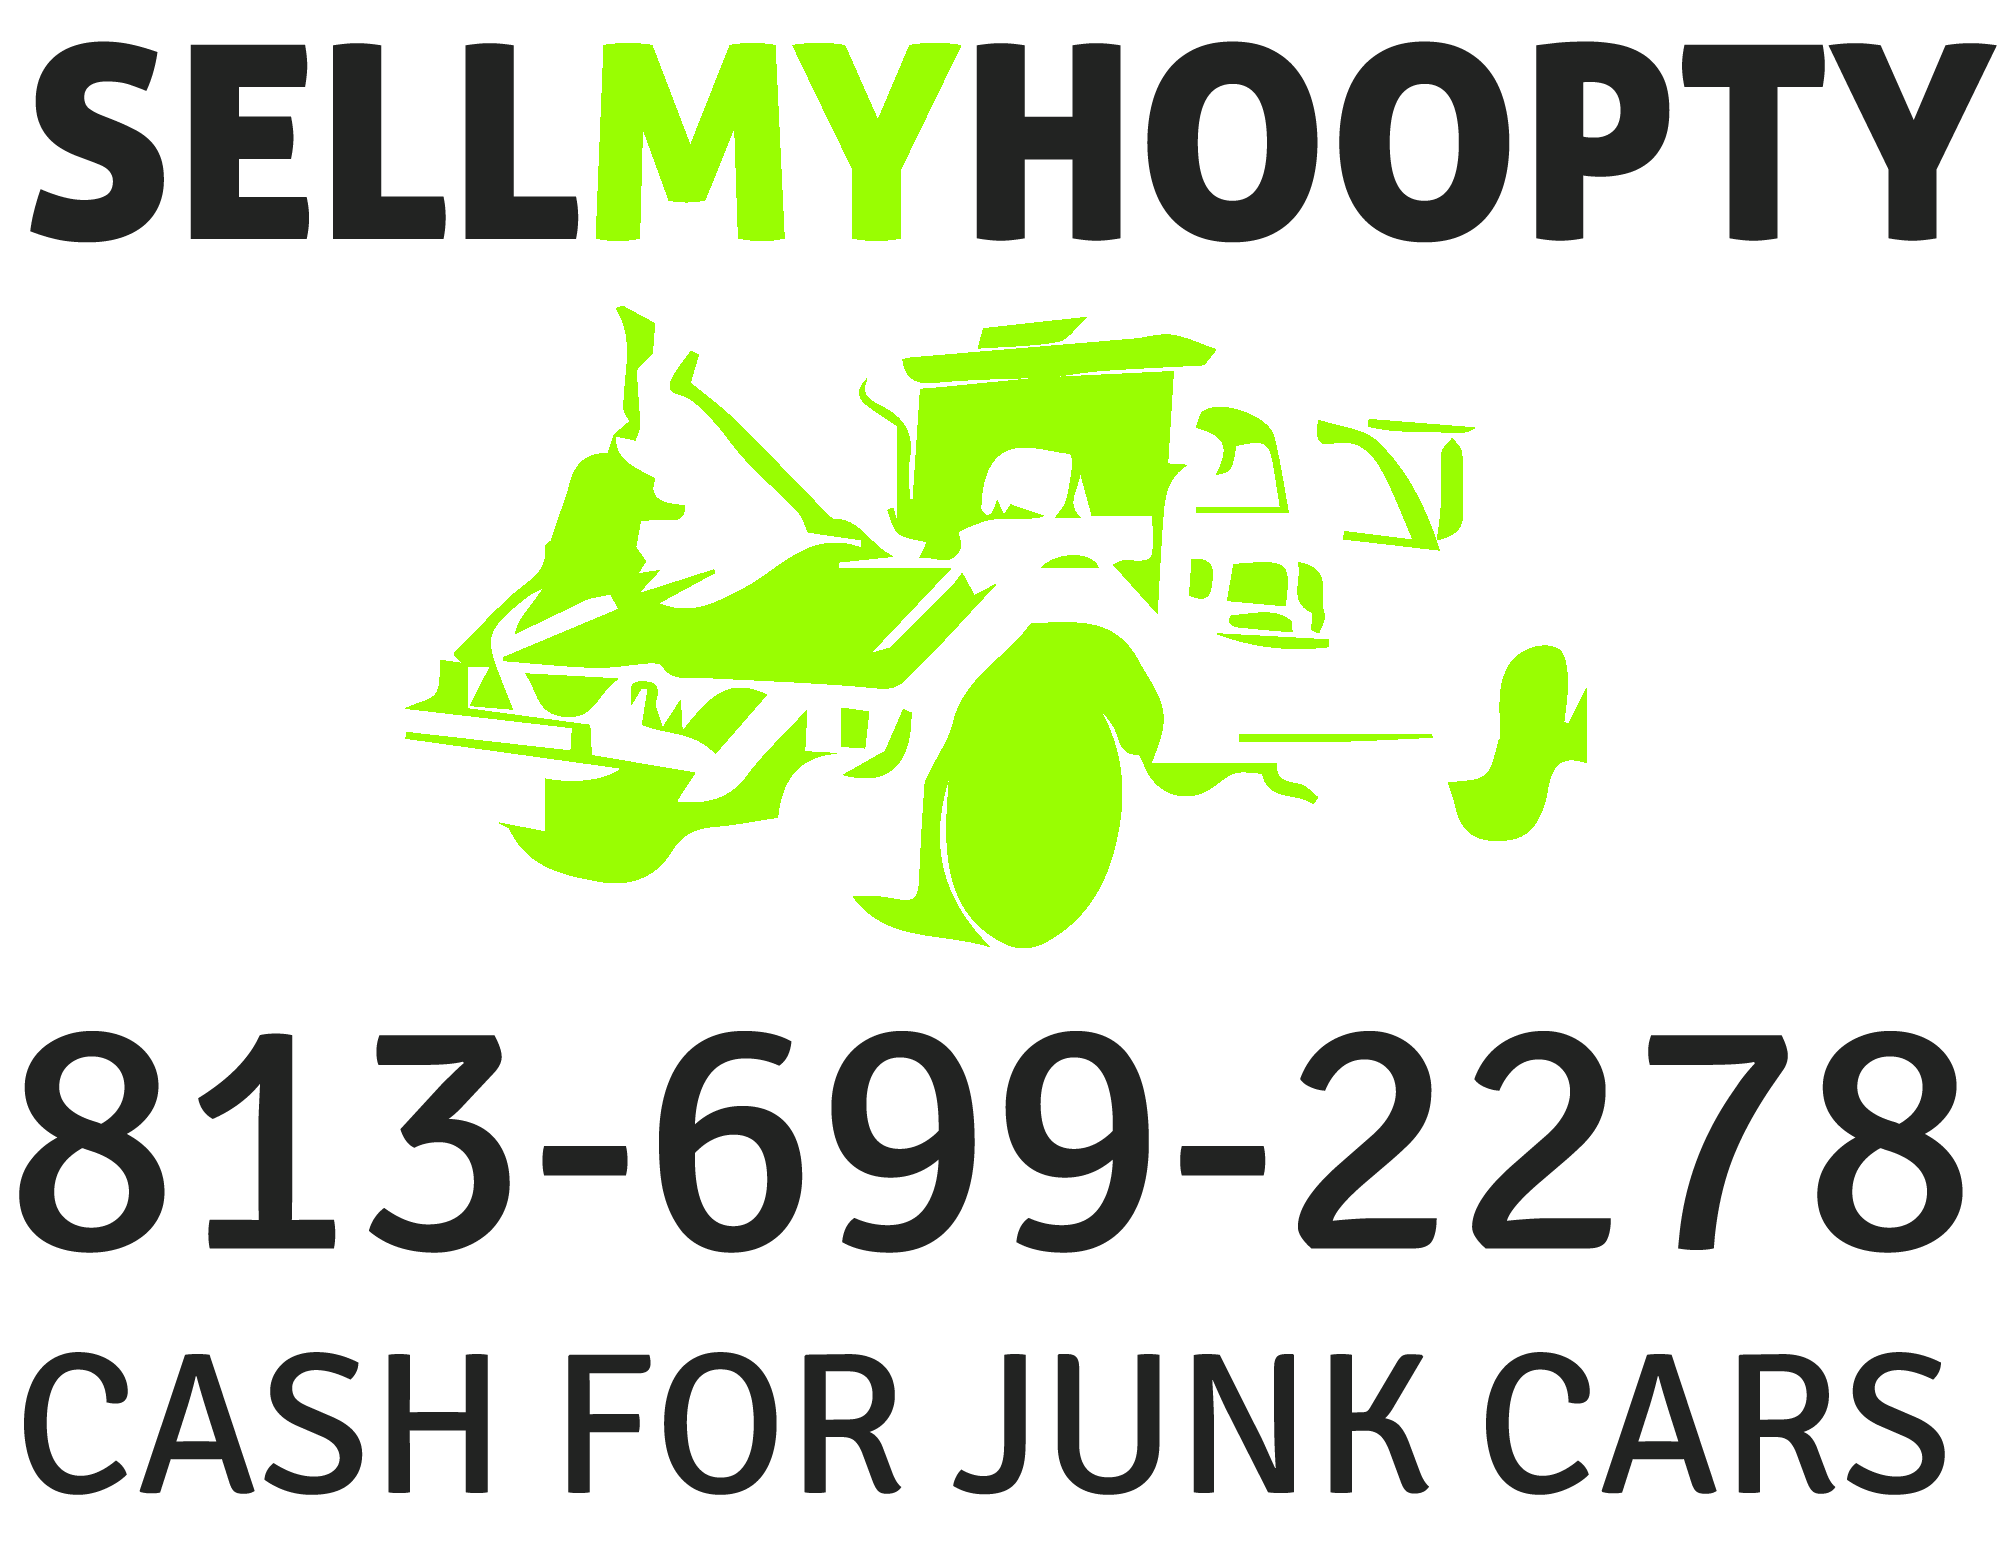 Cash For Junk Cars Online Quote We Buy Junk Cars Tampa  Cash For Cars Tampa  Sellmyhoopty